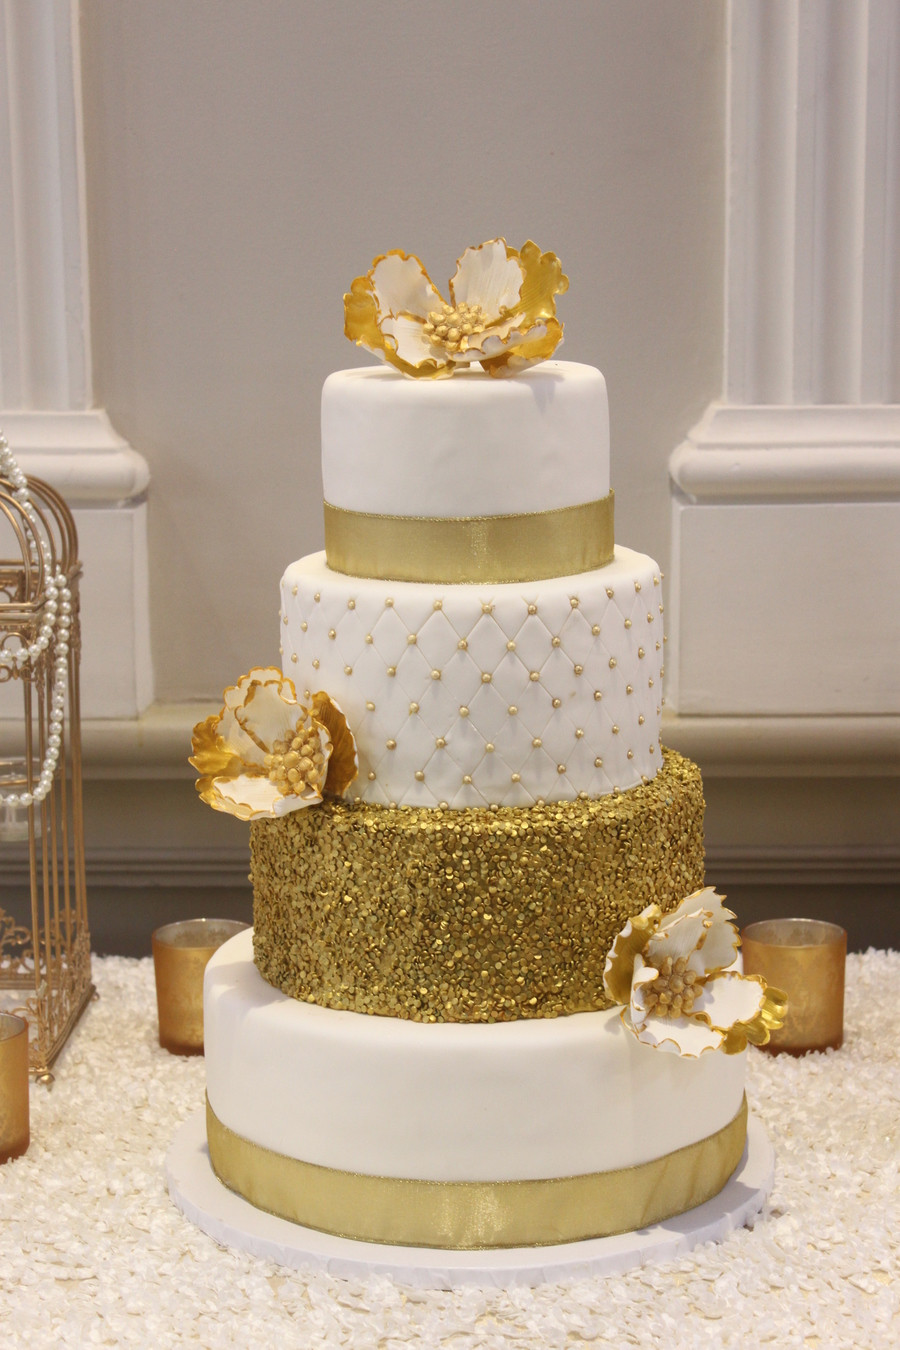 Wedding Cake Gold And White  Gold Glamour Wedding Cake CakeCentral